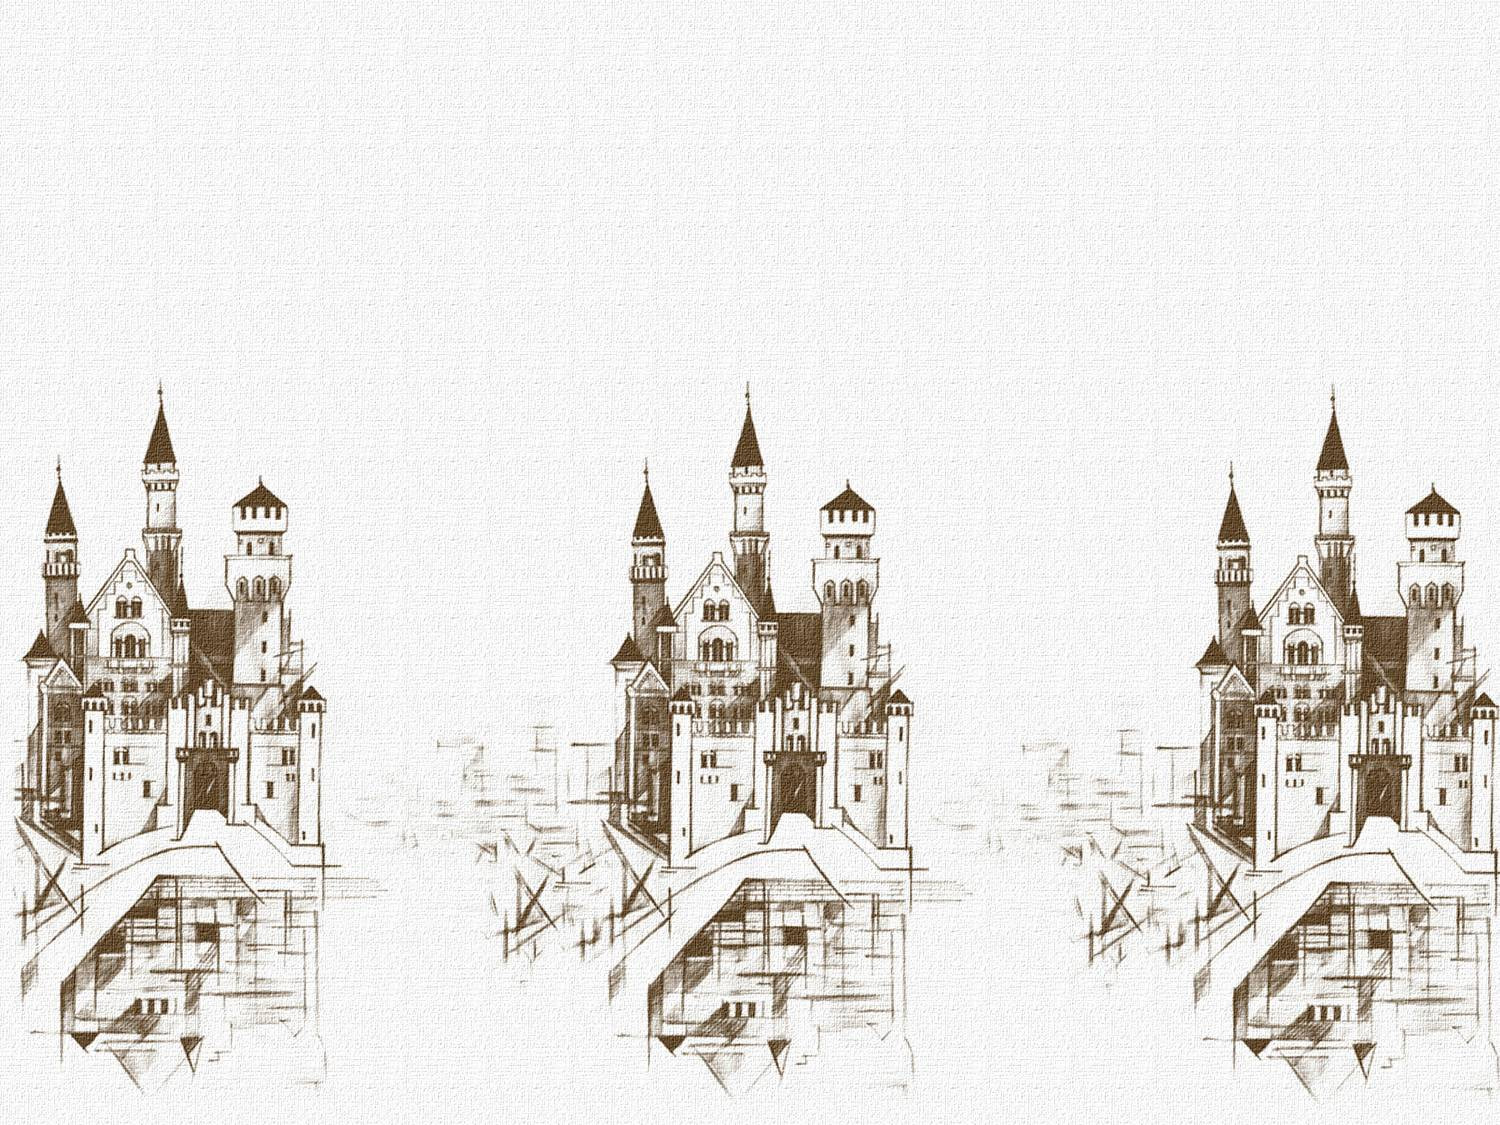 142/20 Castle/Dark Brown Коллекция: Colourfull Collection